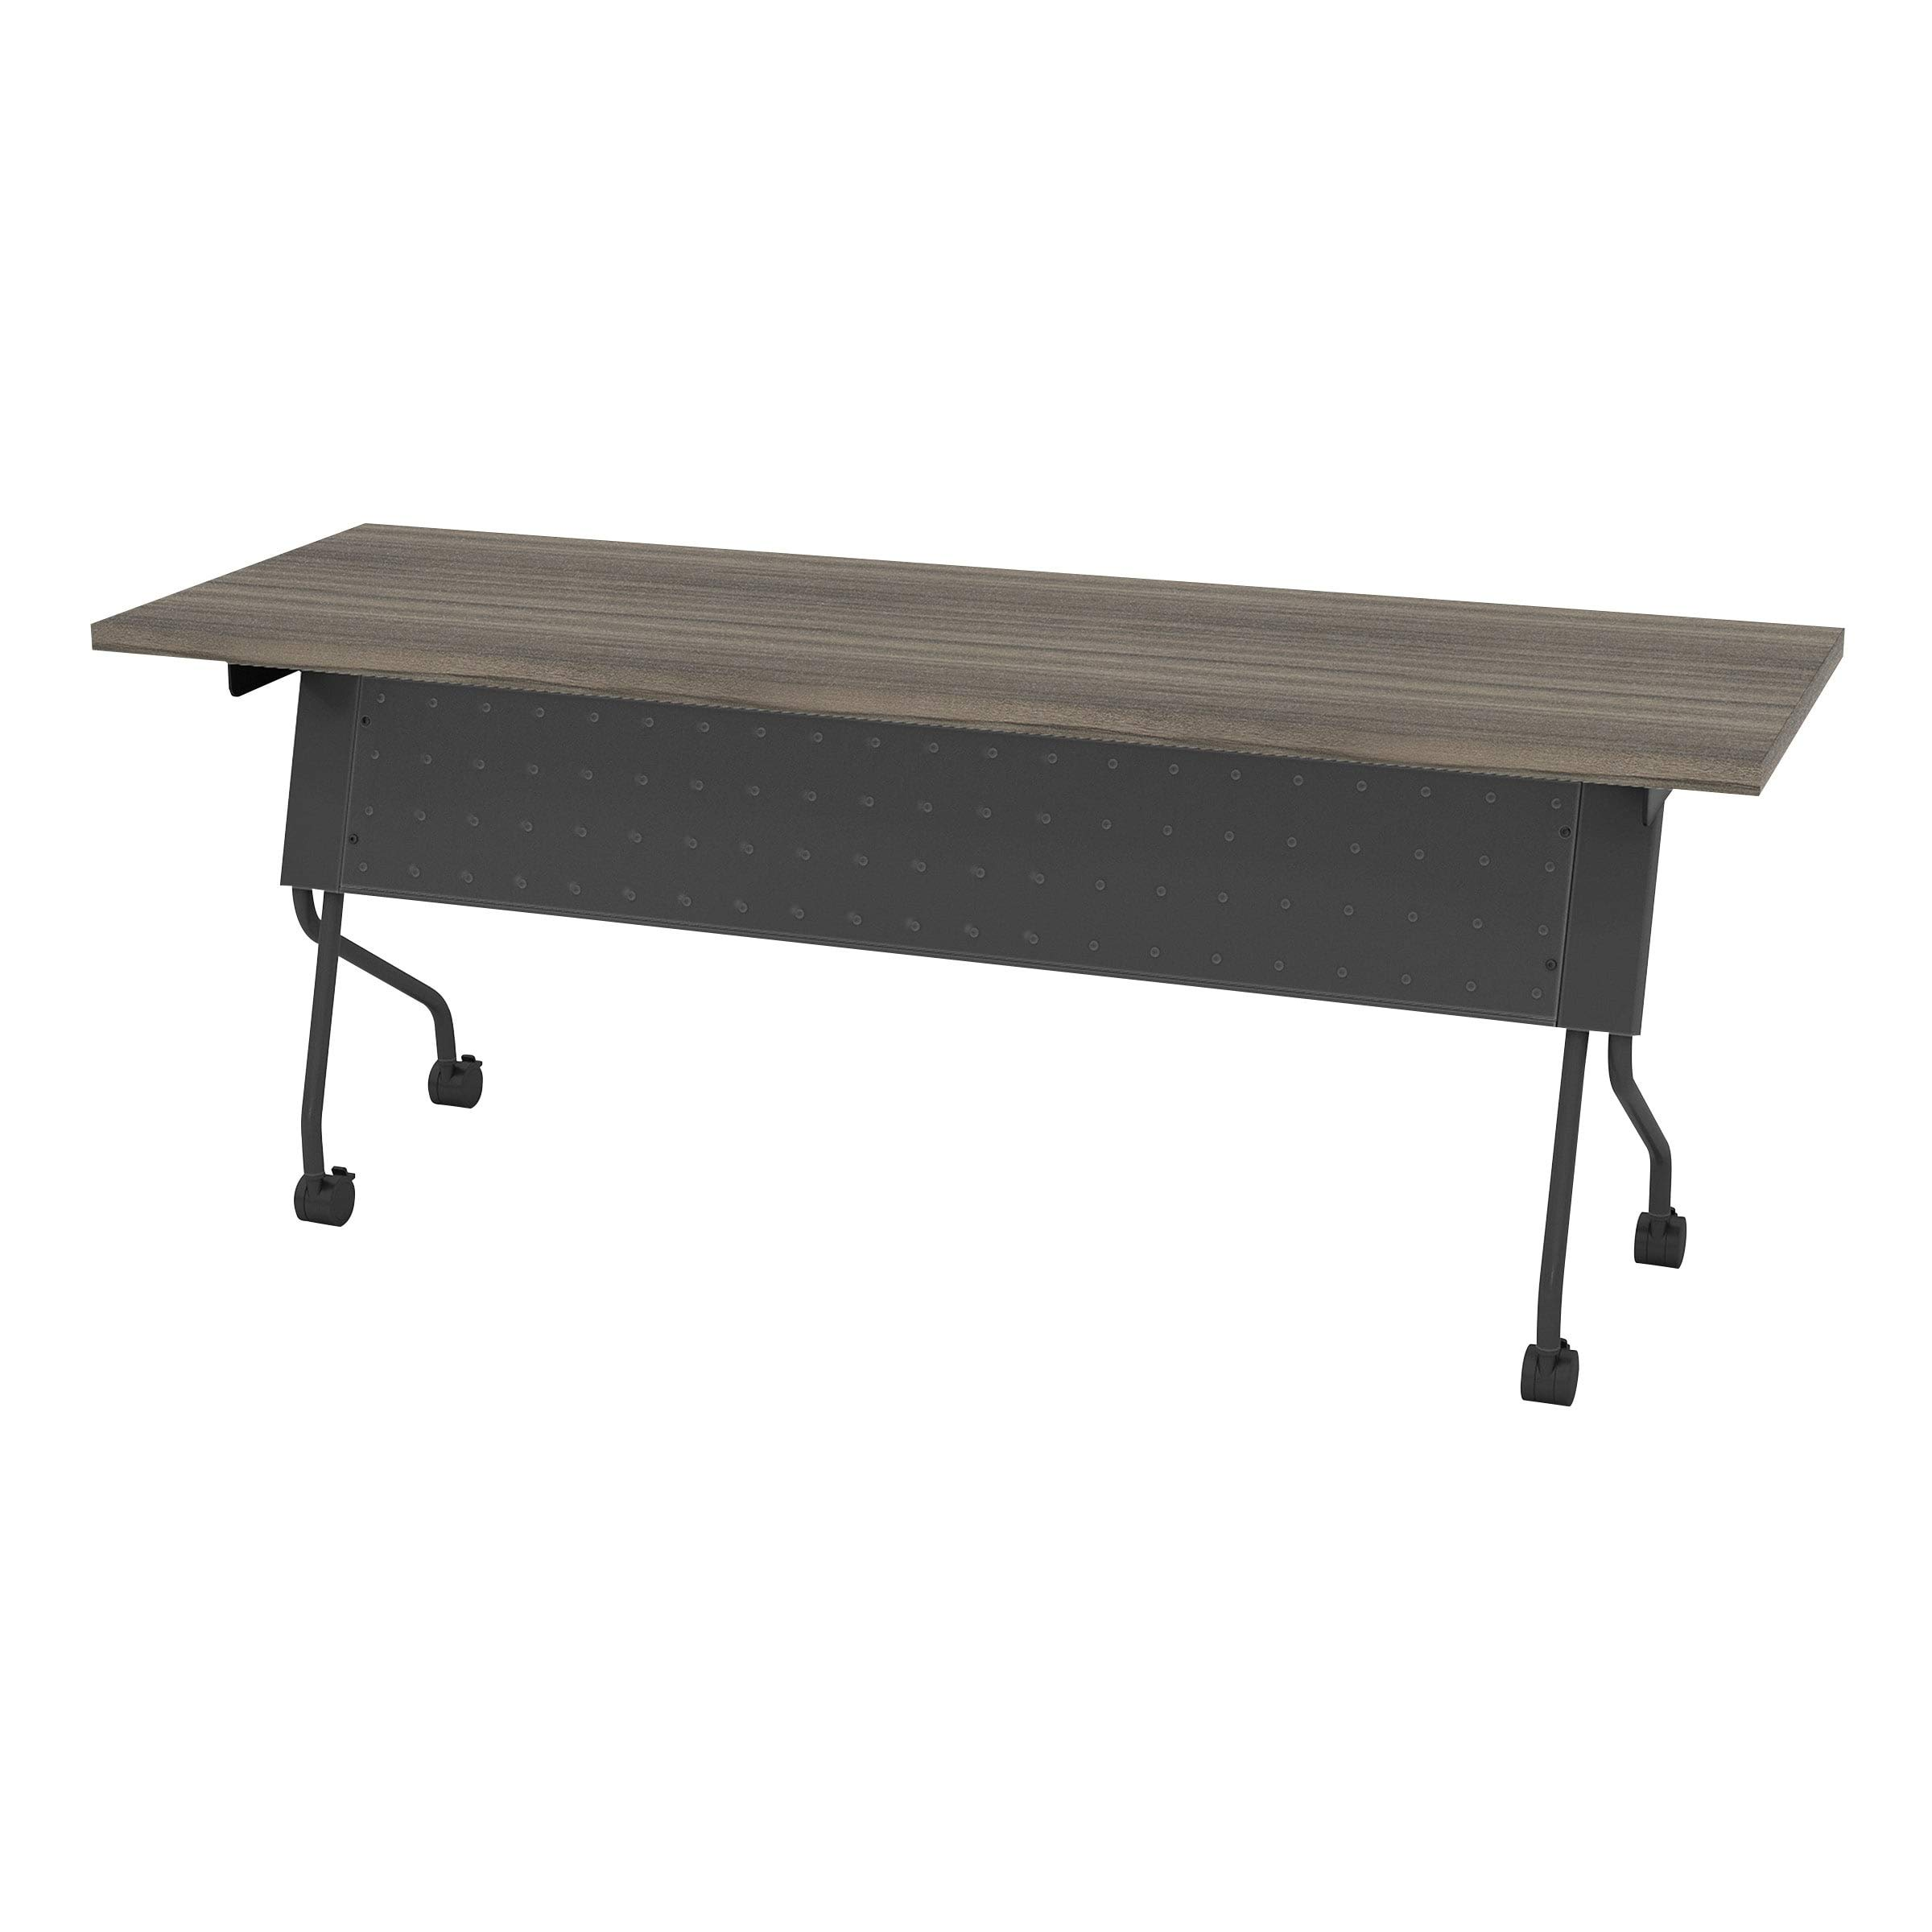 Office Star Products OSP Furniture Flip-Top Training Table 72 x 24 with Titanium Frame Urban Walnut